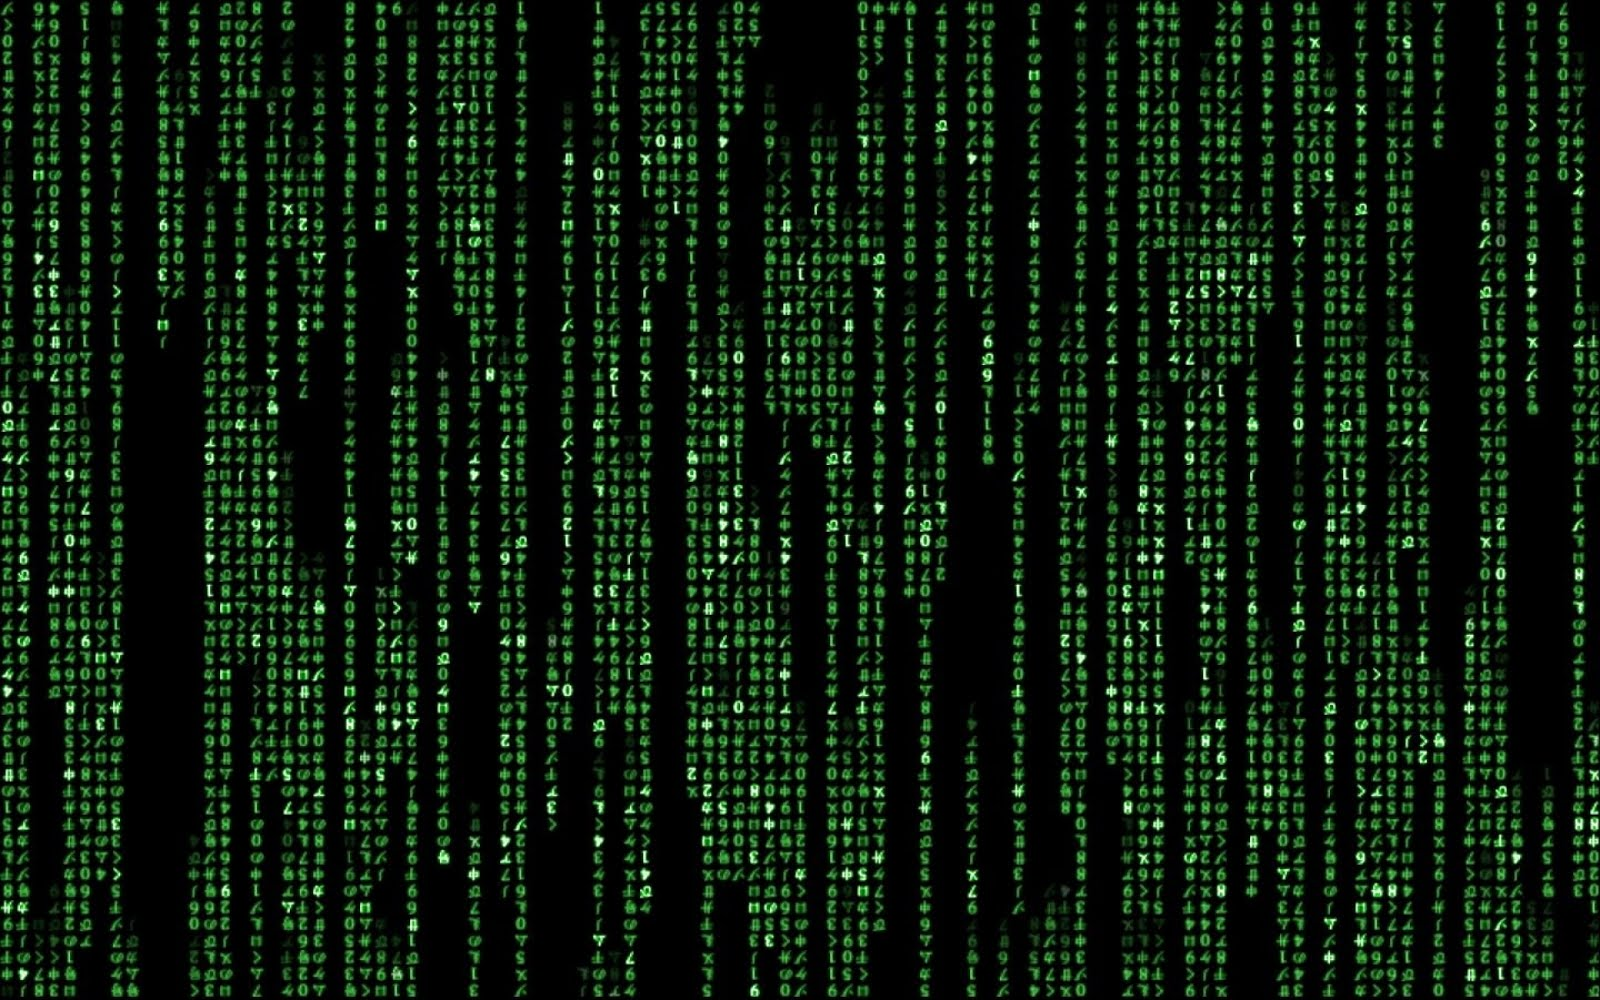 Animated Matrix Wallpaper Windows 10 - WallpaperSafari